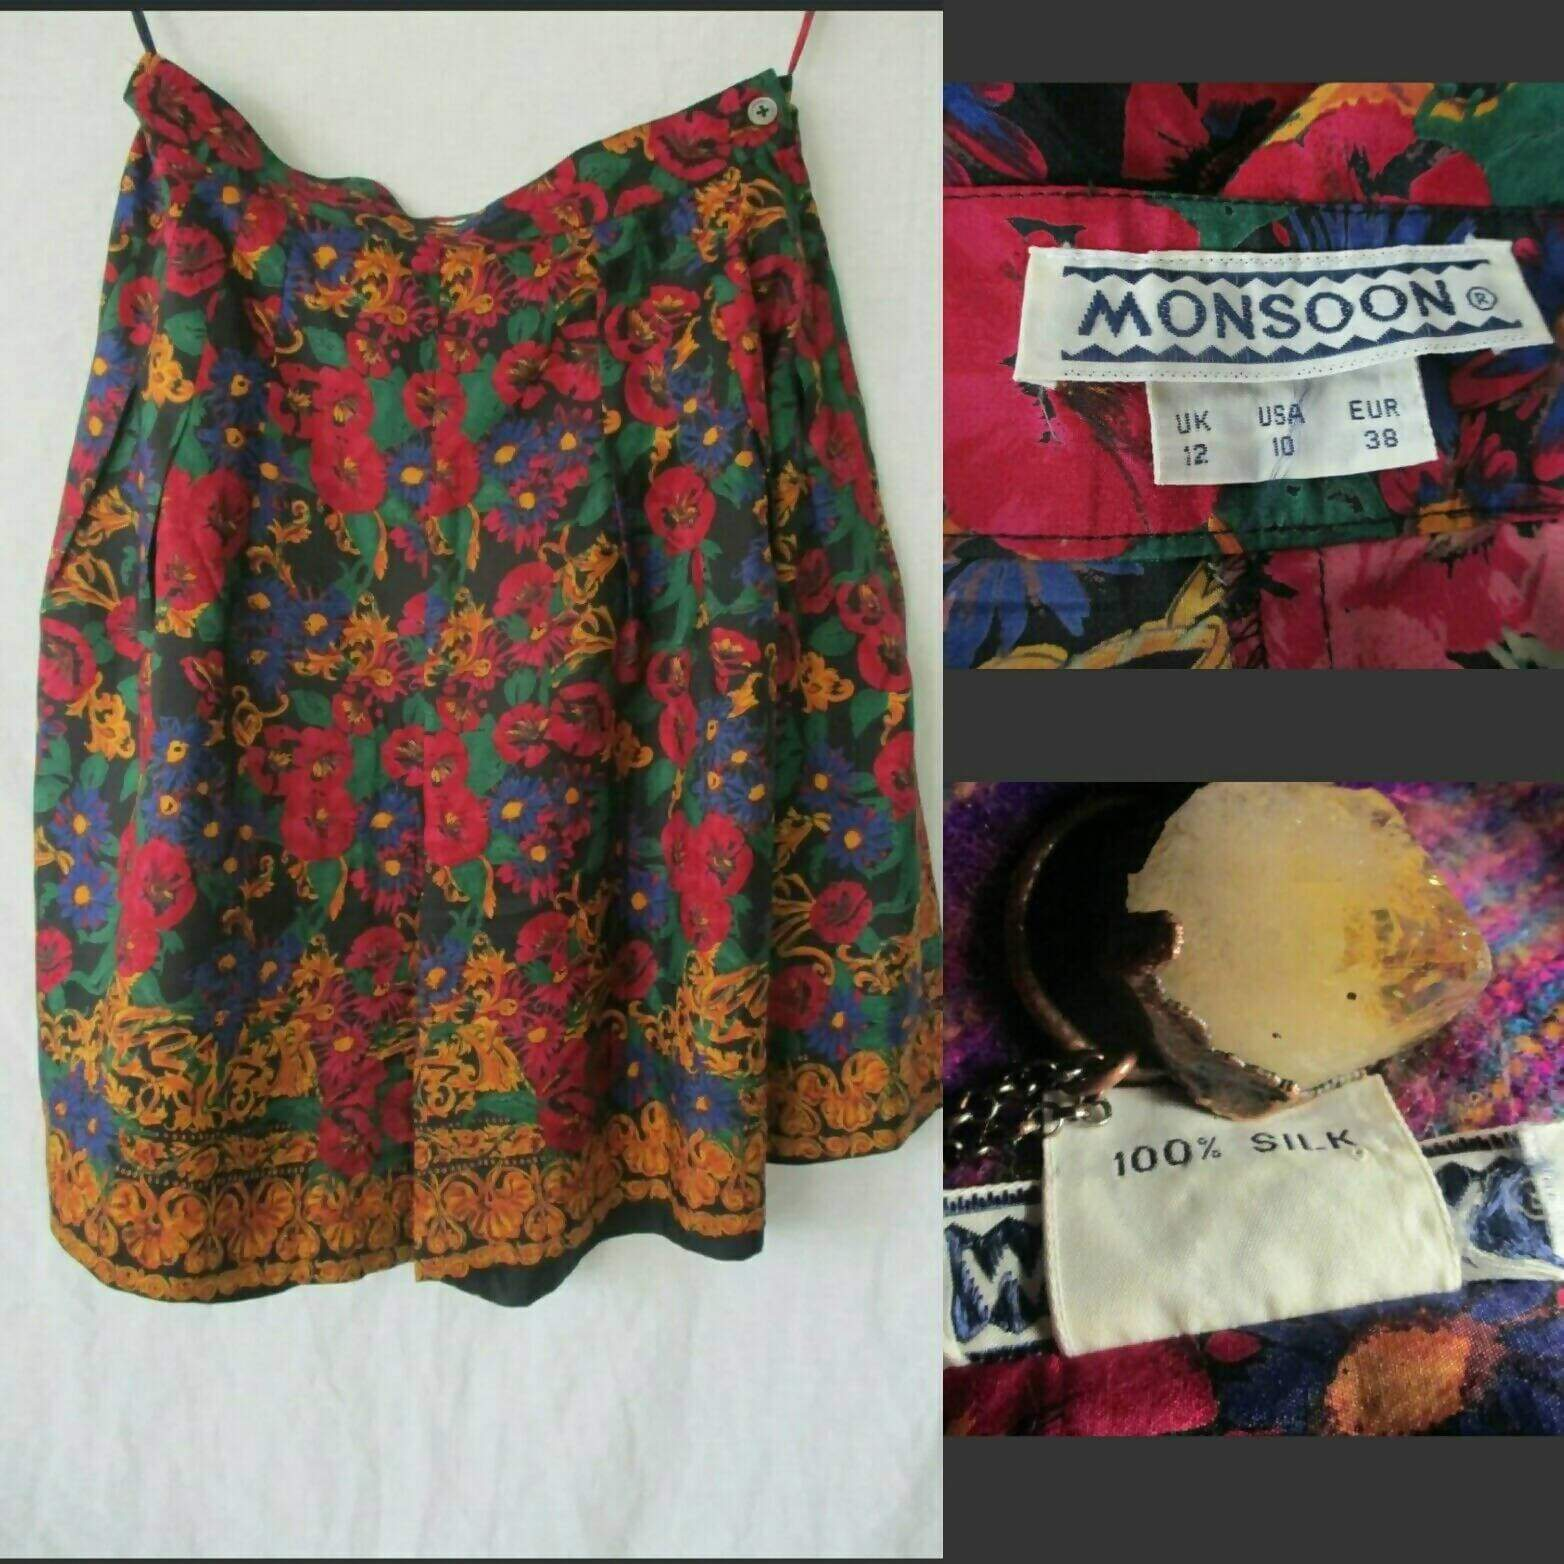 Boho 100% Silk Vintage Monsoon 90s 70s Floral Summer Festival High Waist Culotte Shorts UK 12